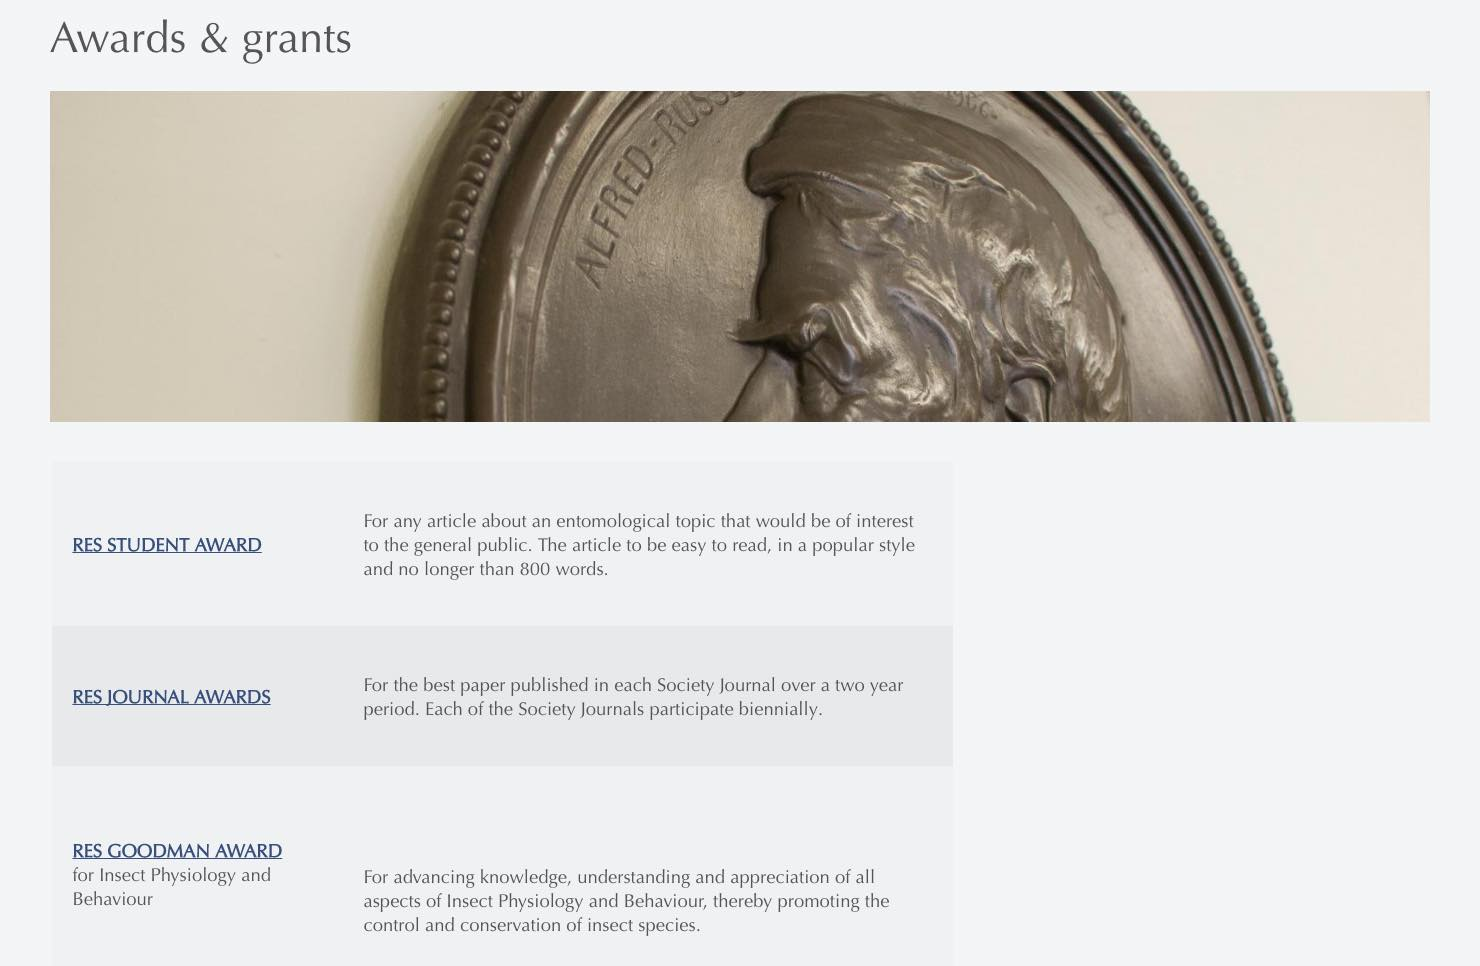 RES Awards and Grants page screenshot.